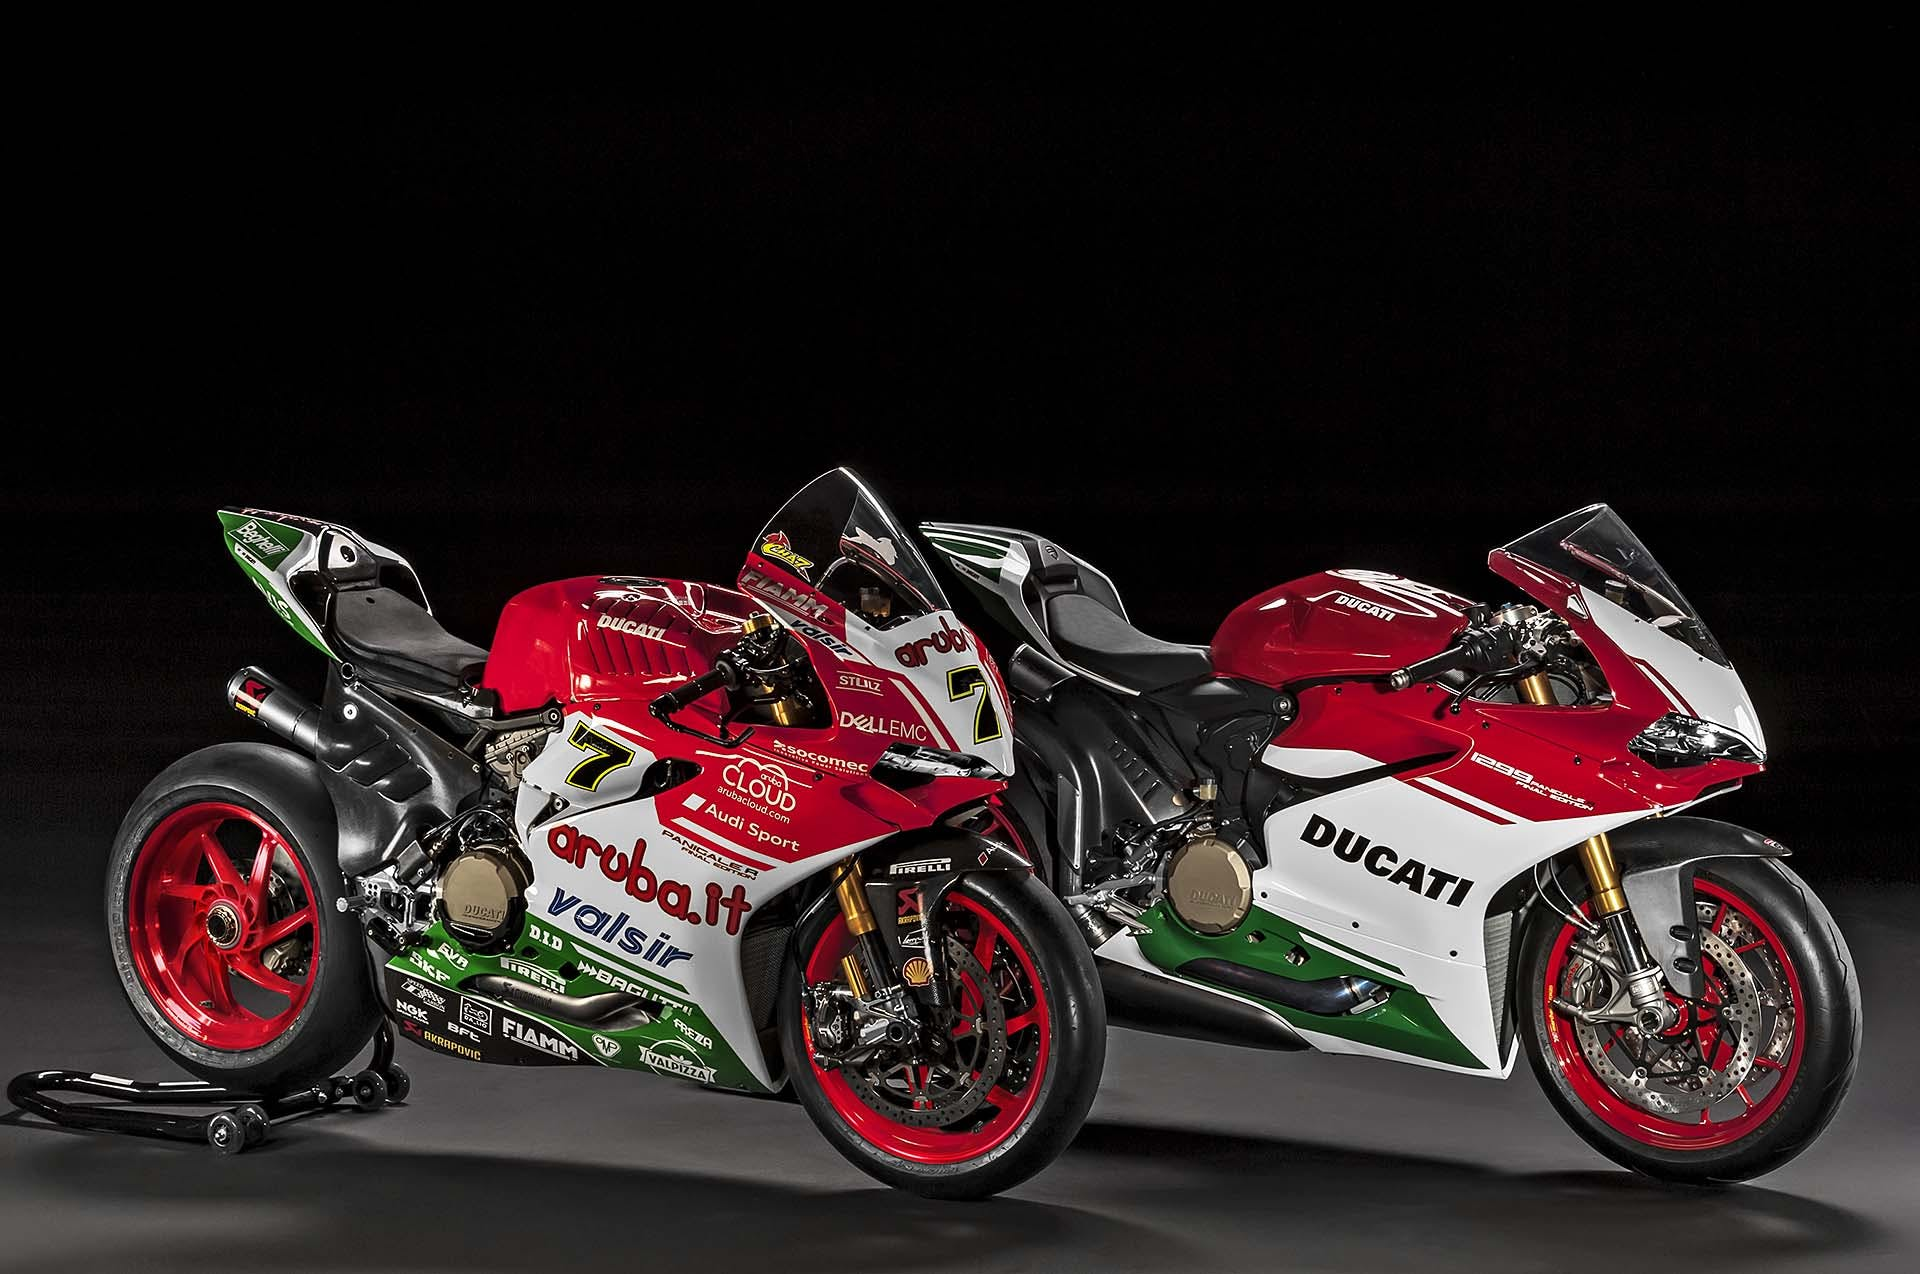 Ducati 1299 Panigale R Final Edition race